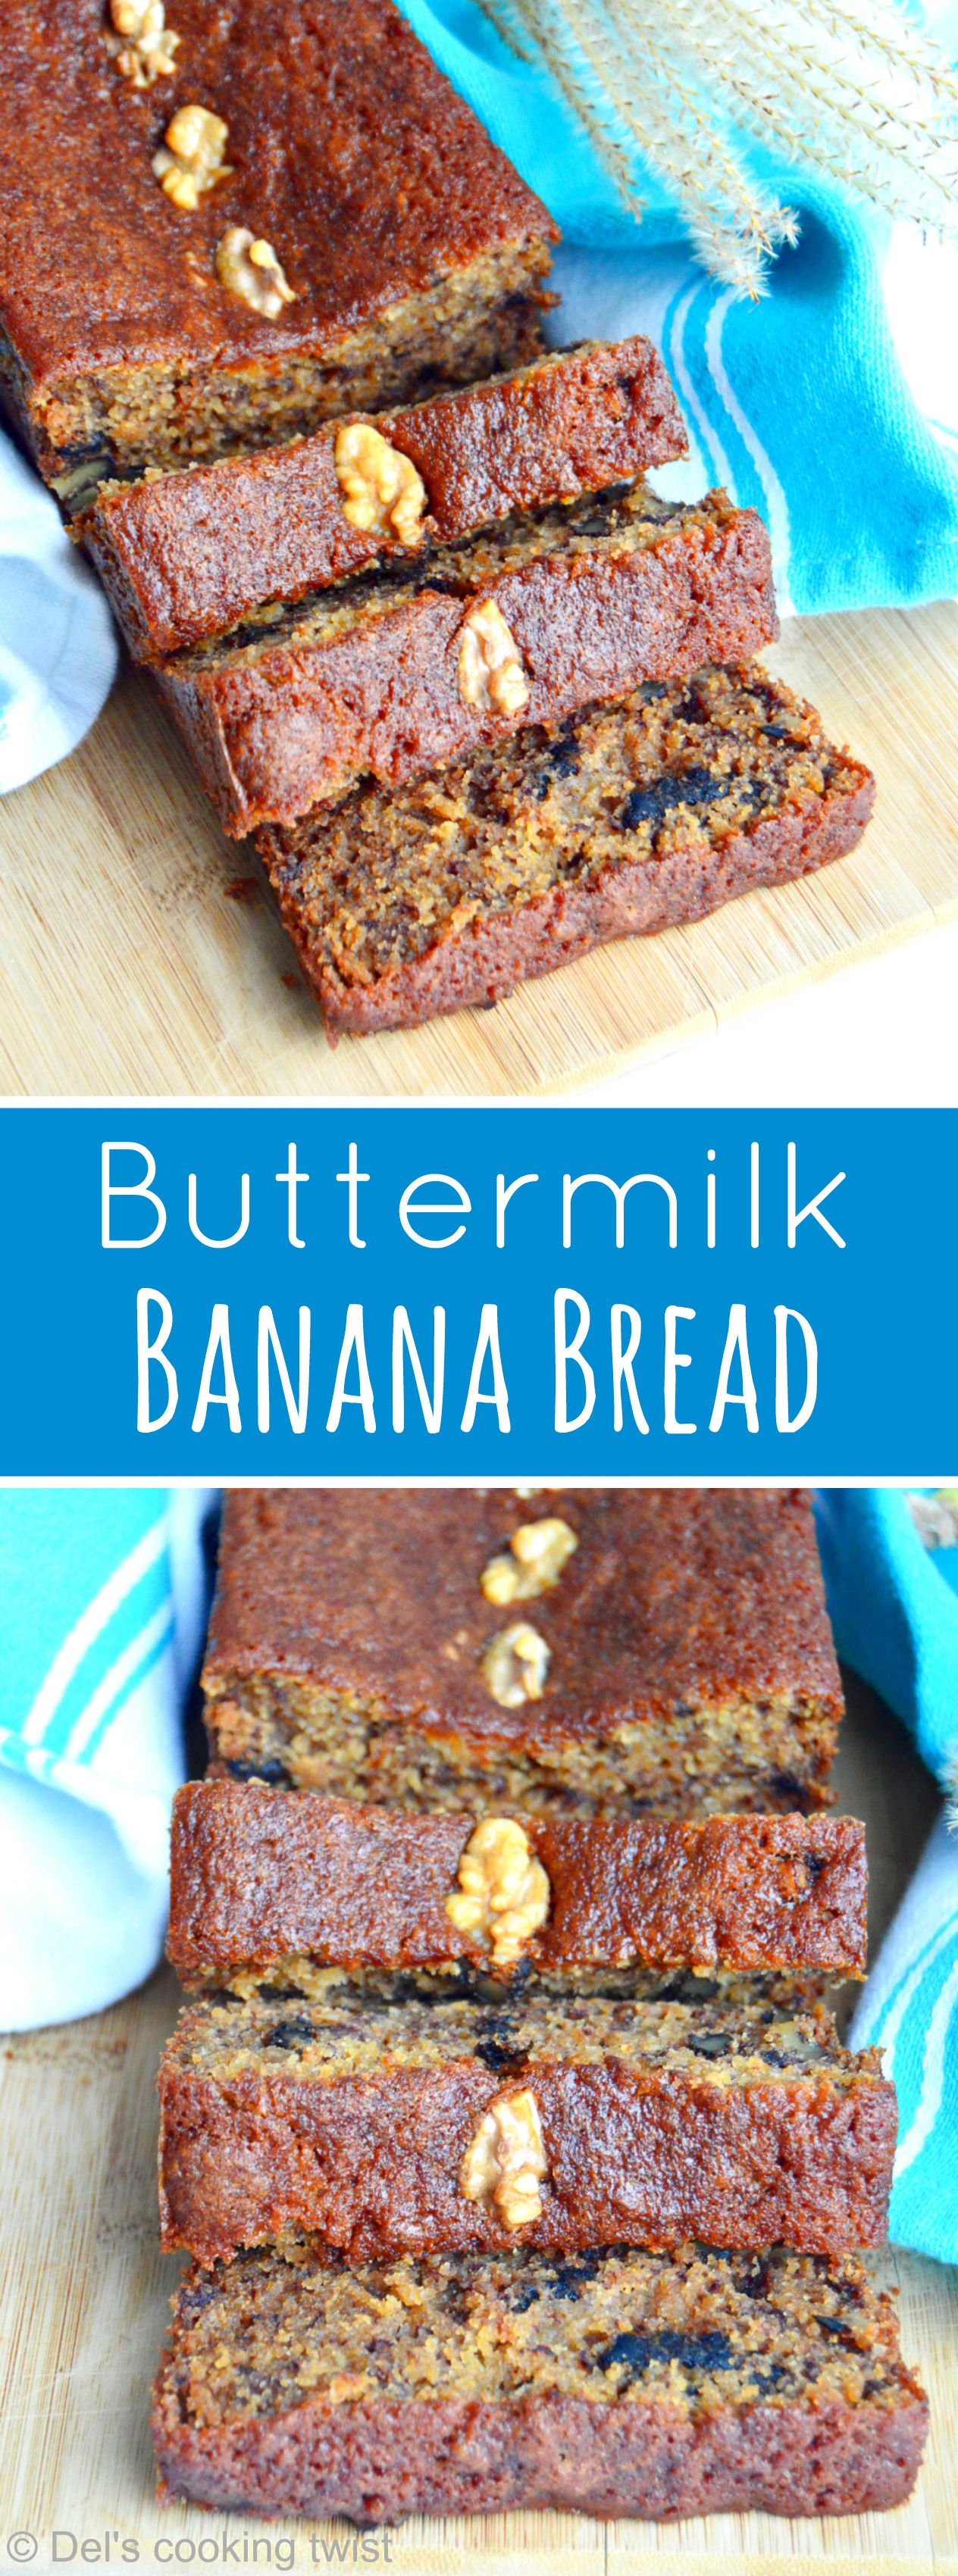 Buttermilk Banana Bread Del S Cooking Twist Recipe Buttermilk Banana Bread Buttermilk Recipes Banana Bread